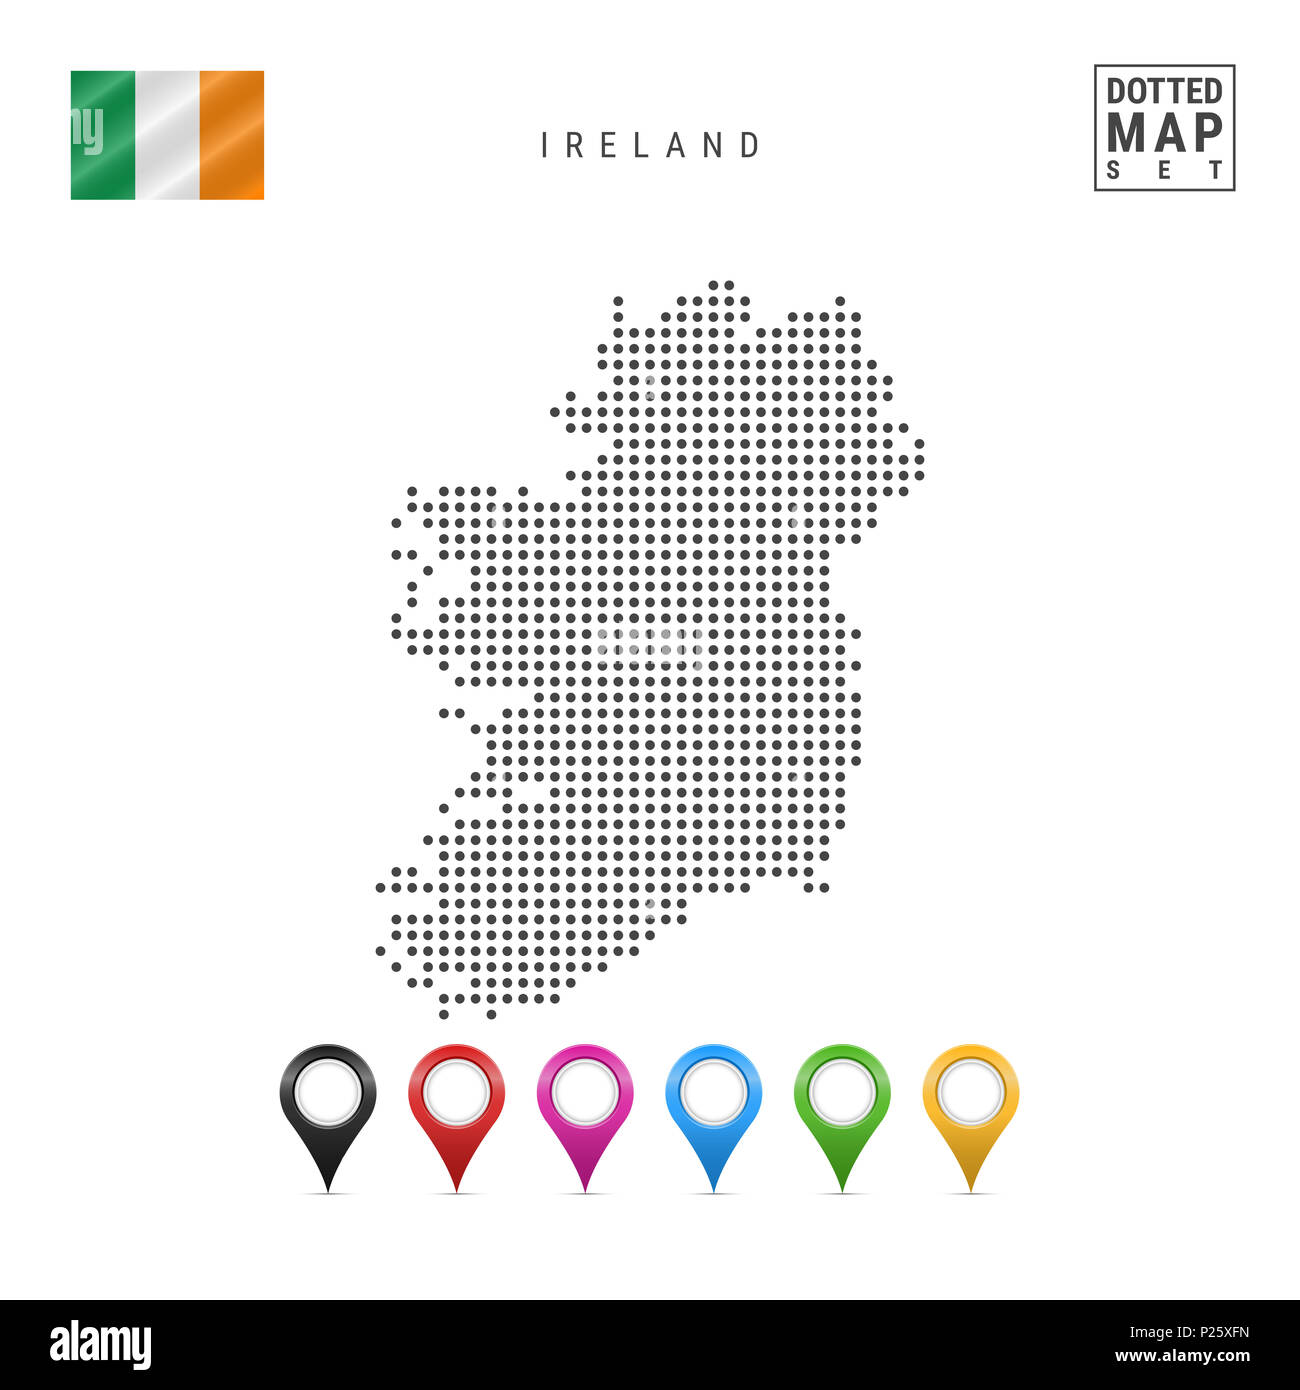 Simple Map Of Ireland.Dotted Map Of Ireland Simple Silhouette Of Ireland The National